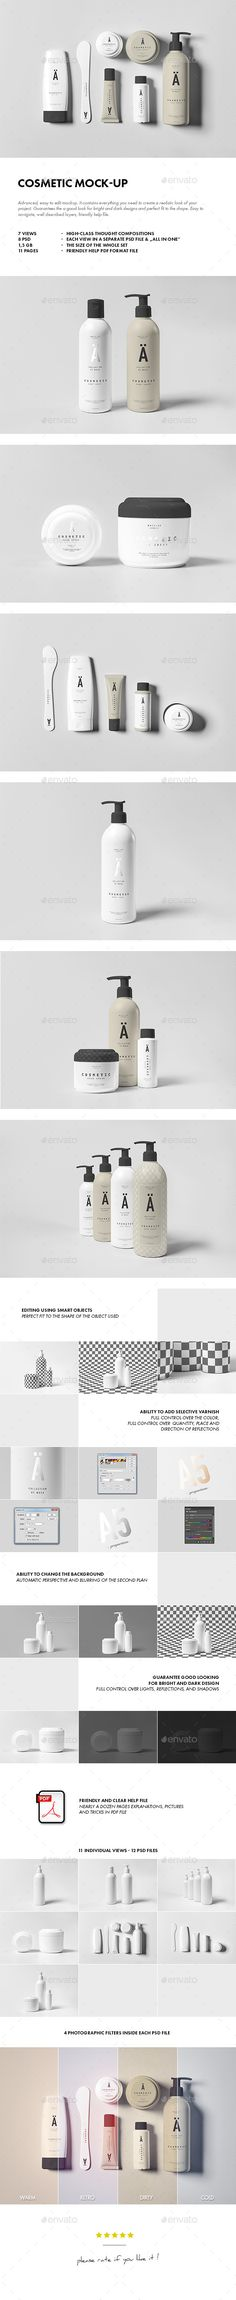 Cosmetic Mock-up - Beauty Packaging